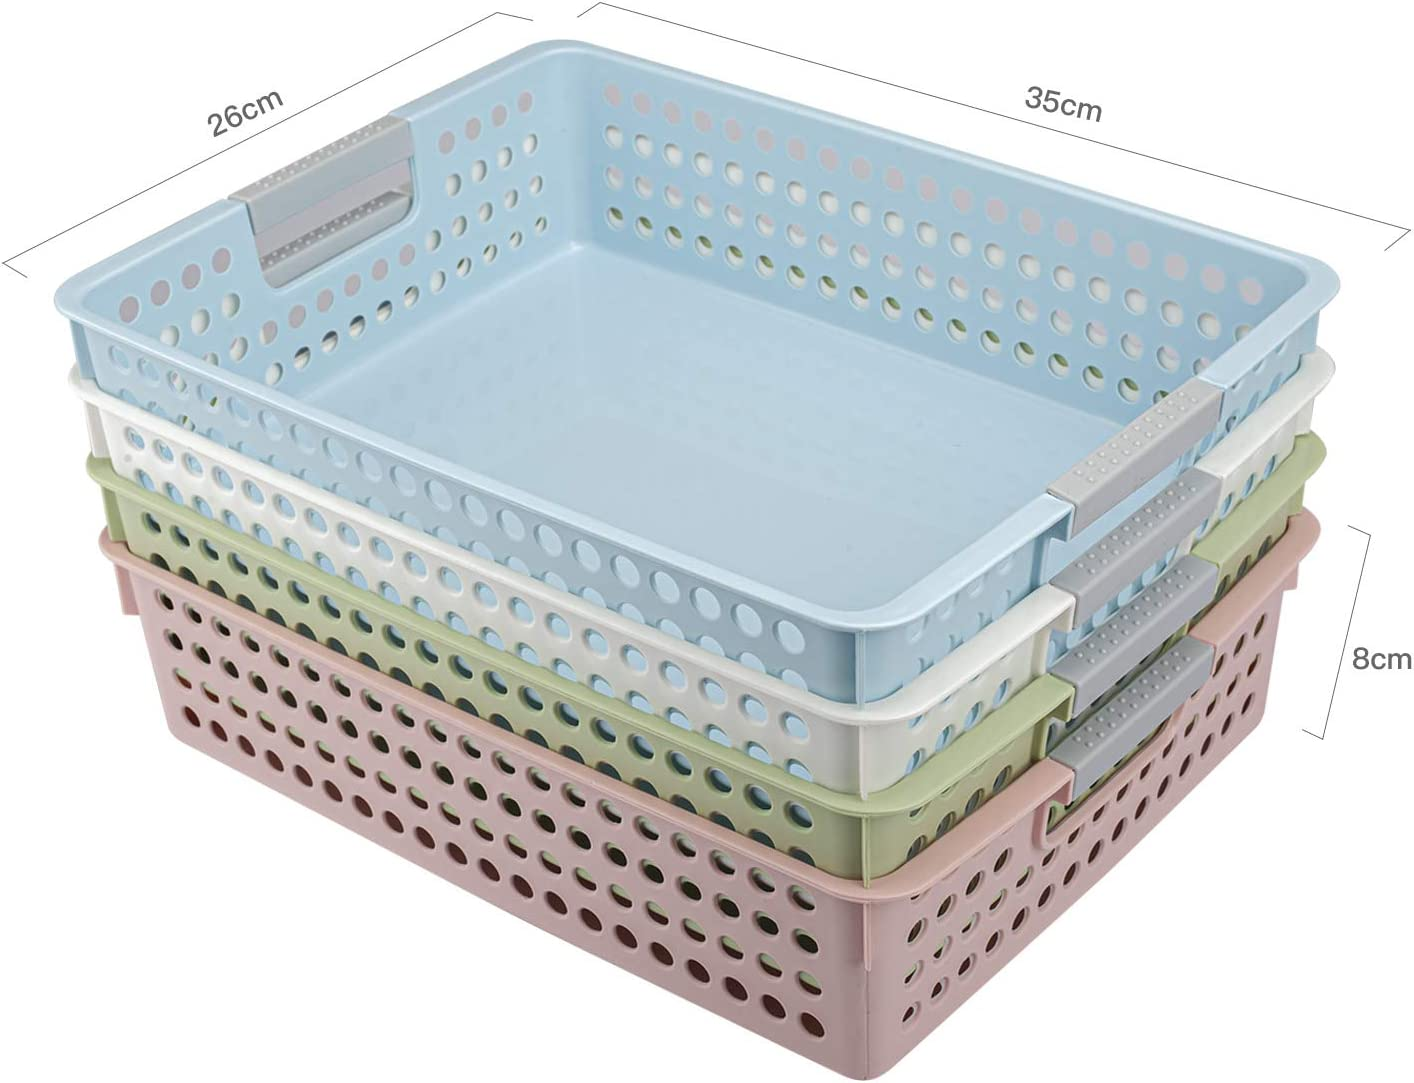 Classroom Office File Holder Office,Home,Kitchen Xuheng Pack of 4 Paper Organizer Basket with Box Paper Clips Binder Clips Plastic Baskets Organization Trays with Handles for School